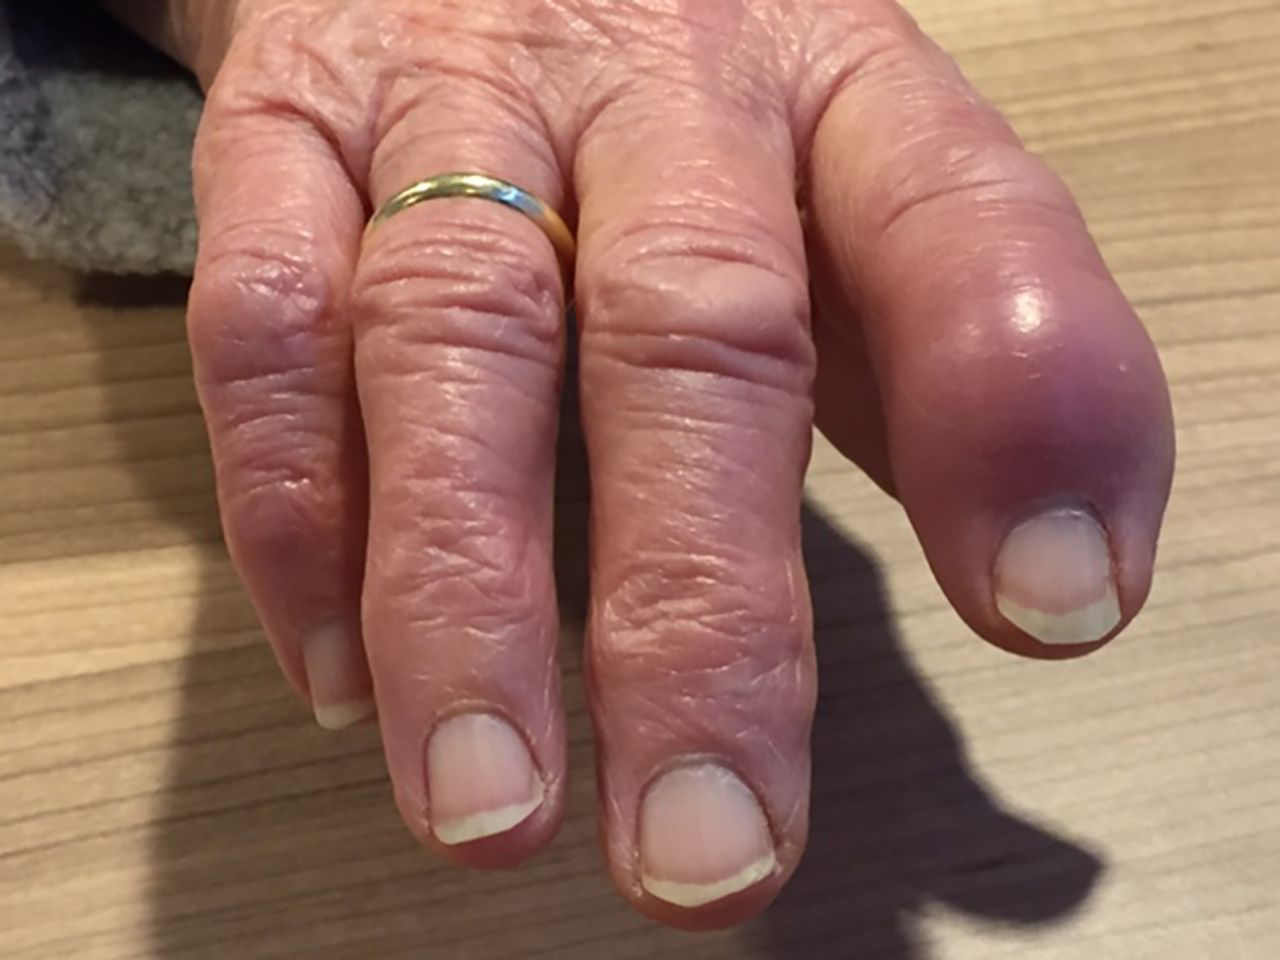 A swollen red finger | The BMJ